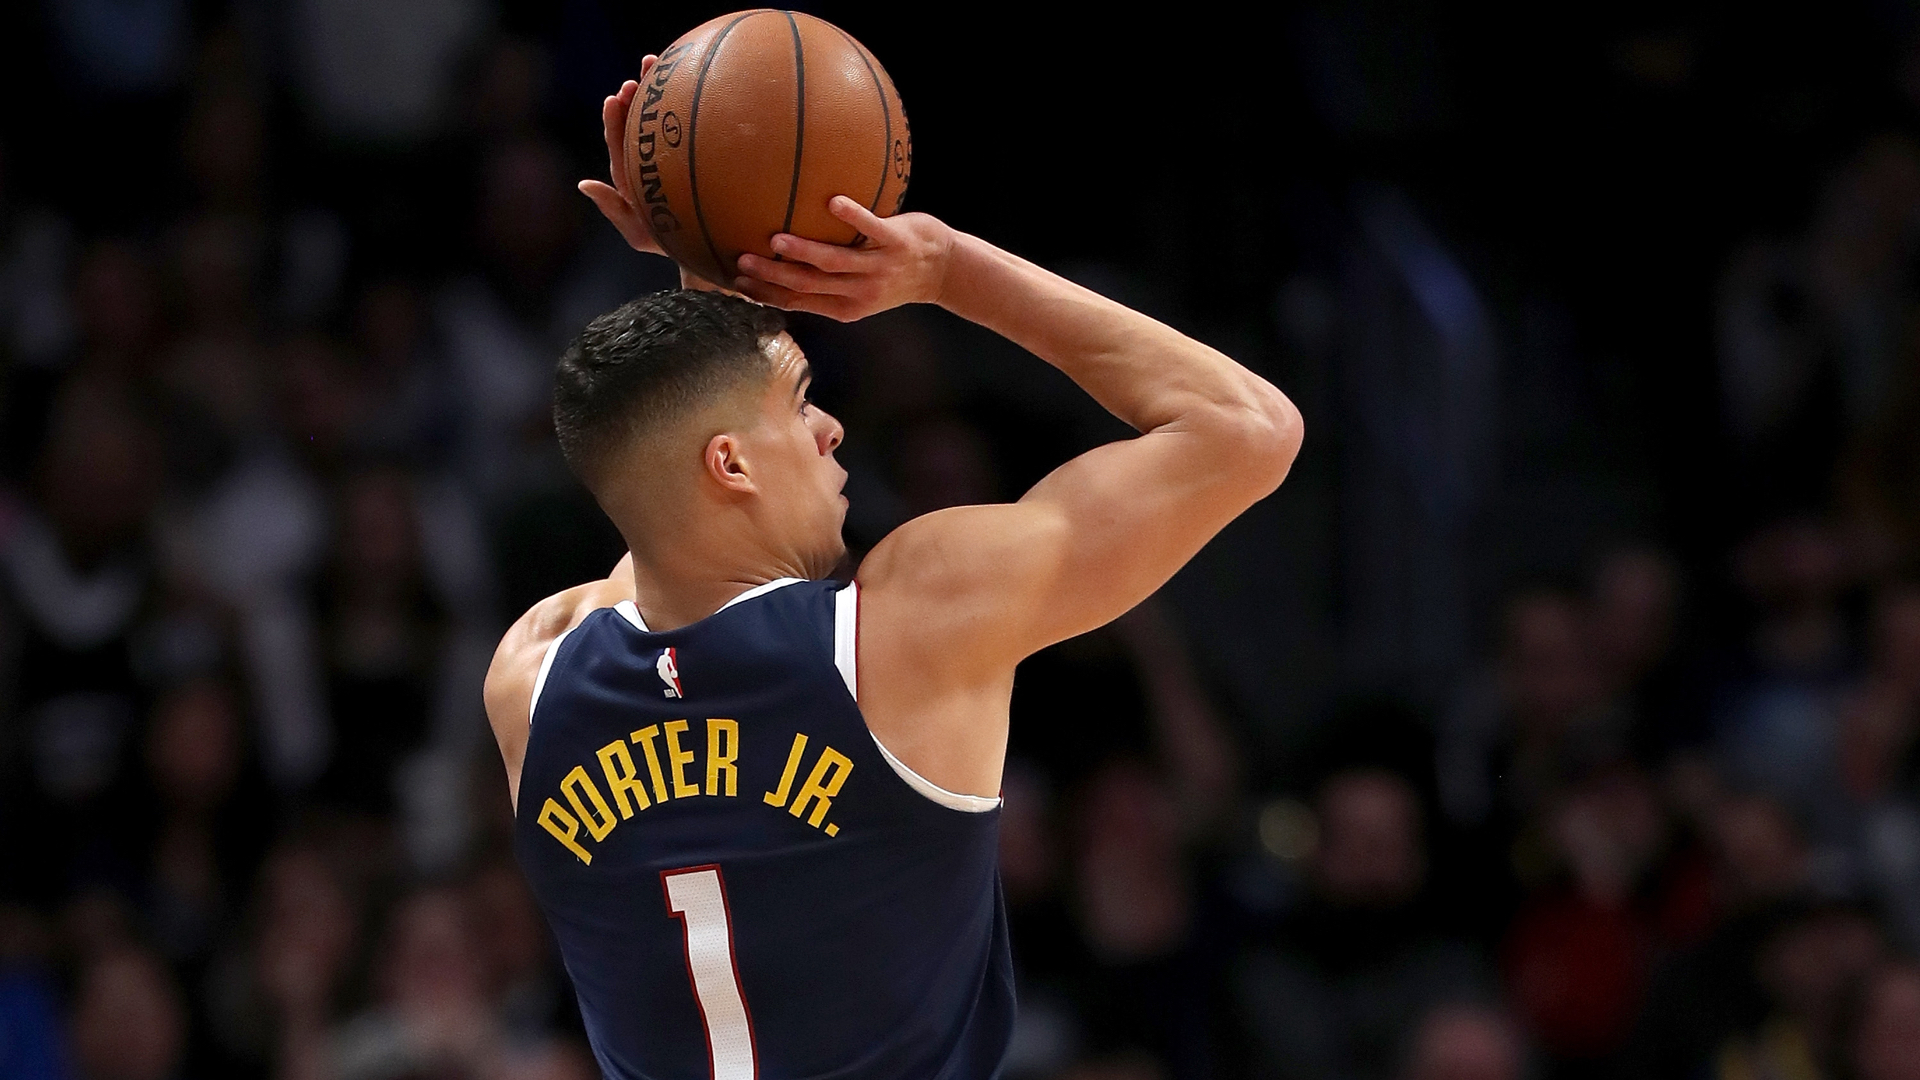 Nuggets' Michael Porter Jr. shares controversial thoughts on COVID-19, vaccines in Q&A 1